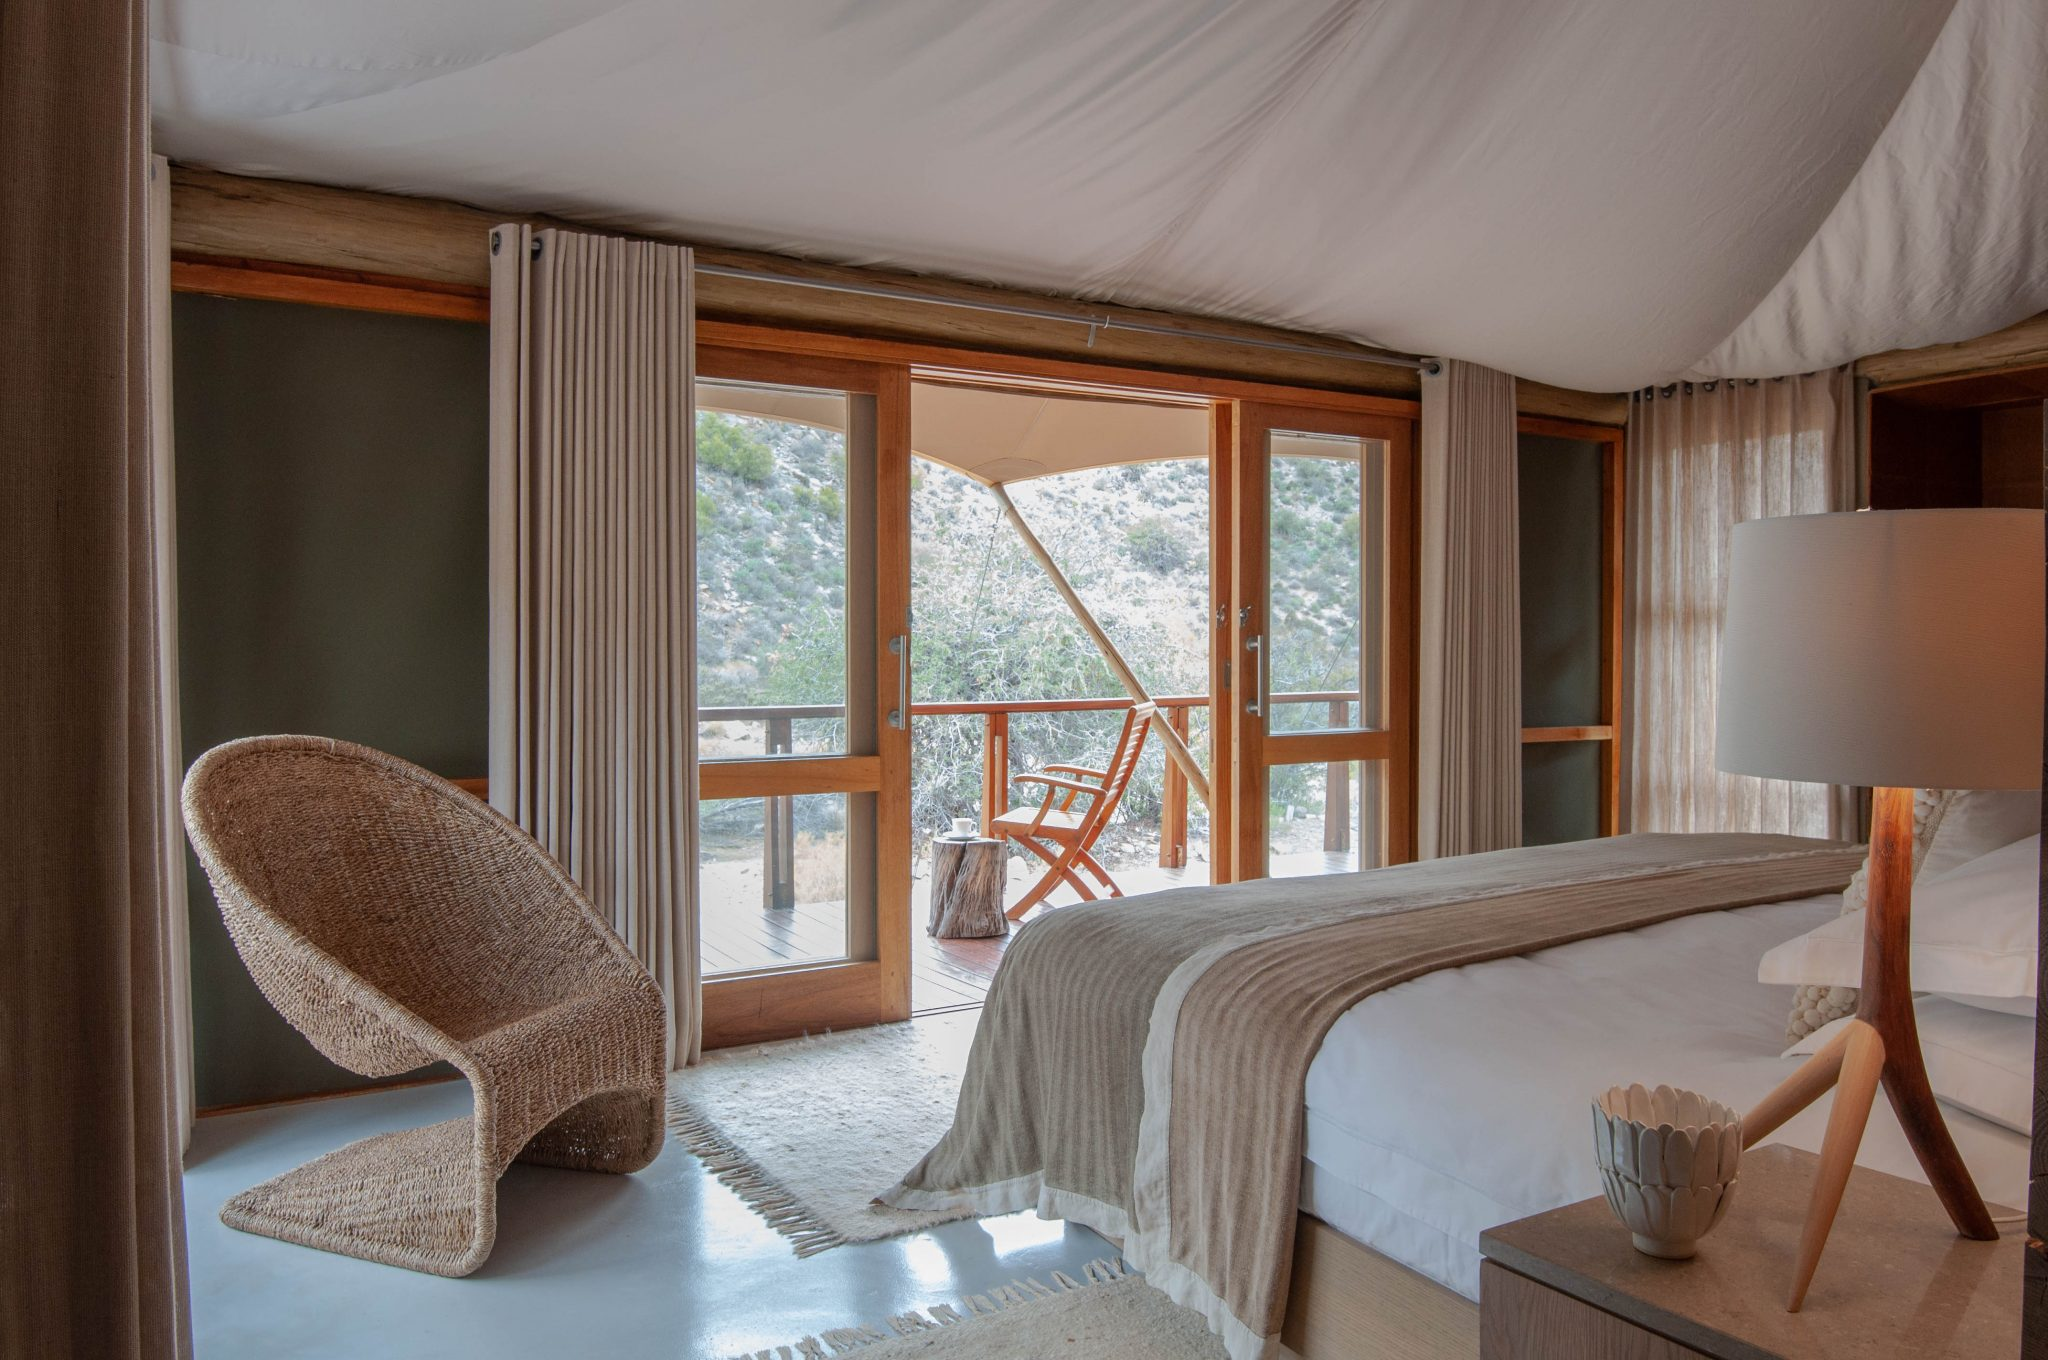 Inside the suite at Dwyka tented camp at Sanbona Private Reserve